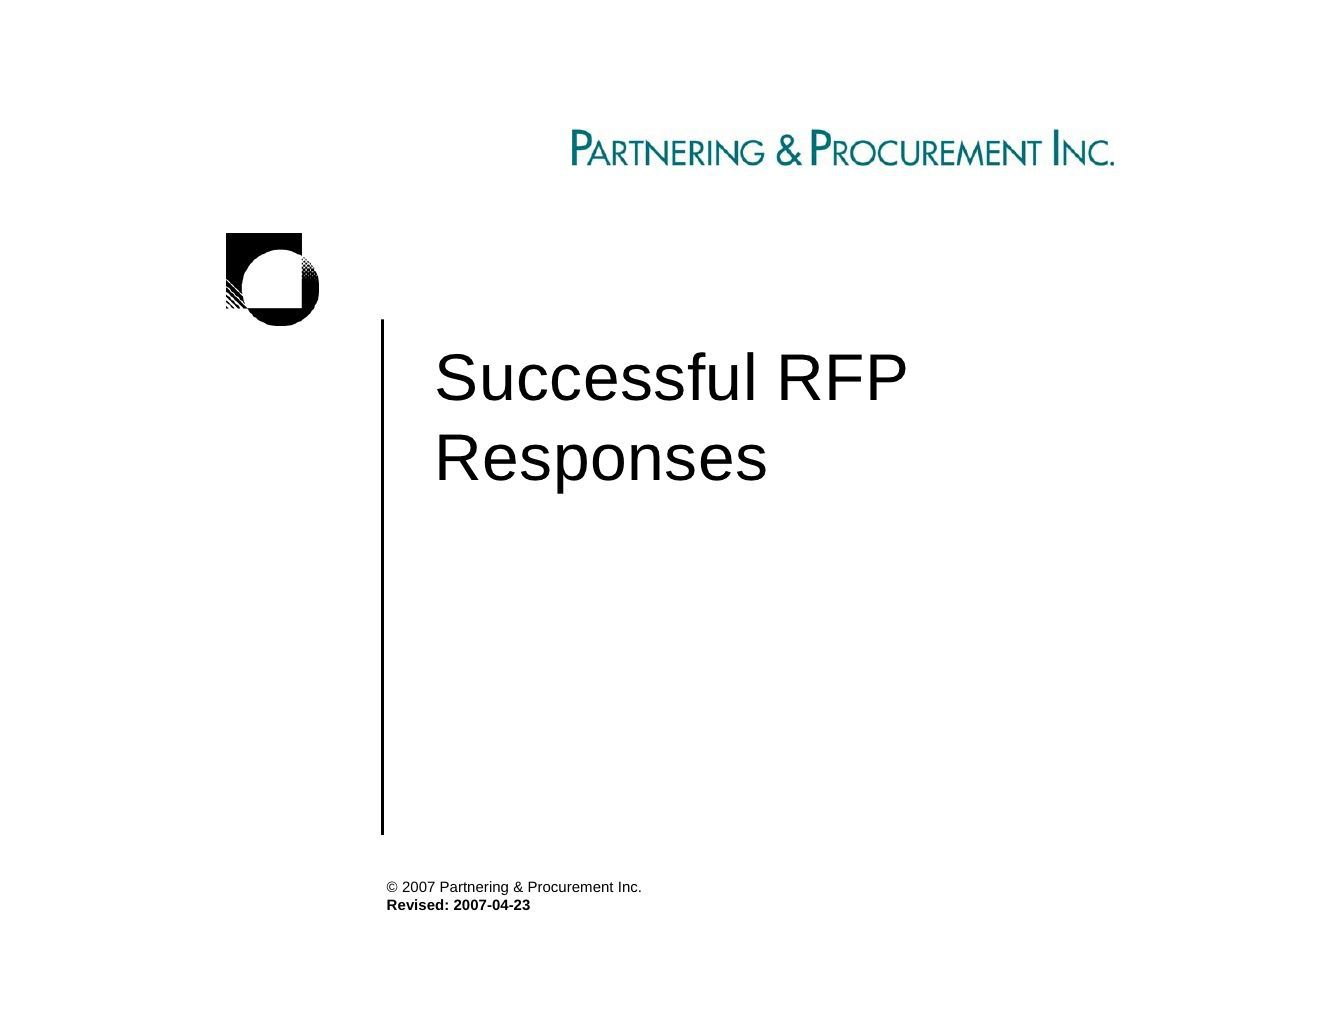 000 Top Request For Proposal Response Template Free Concept Full